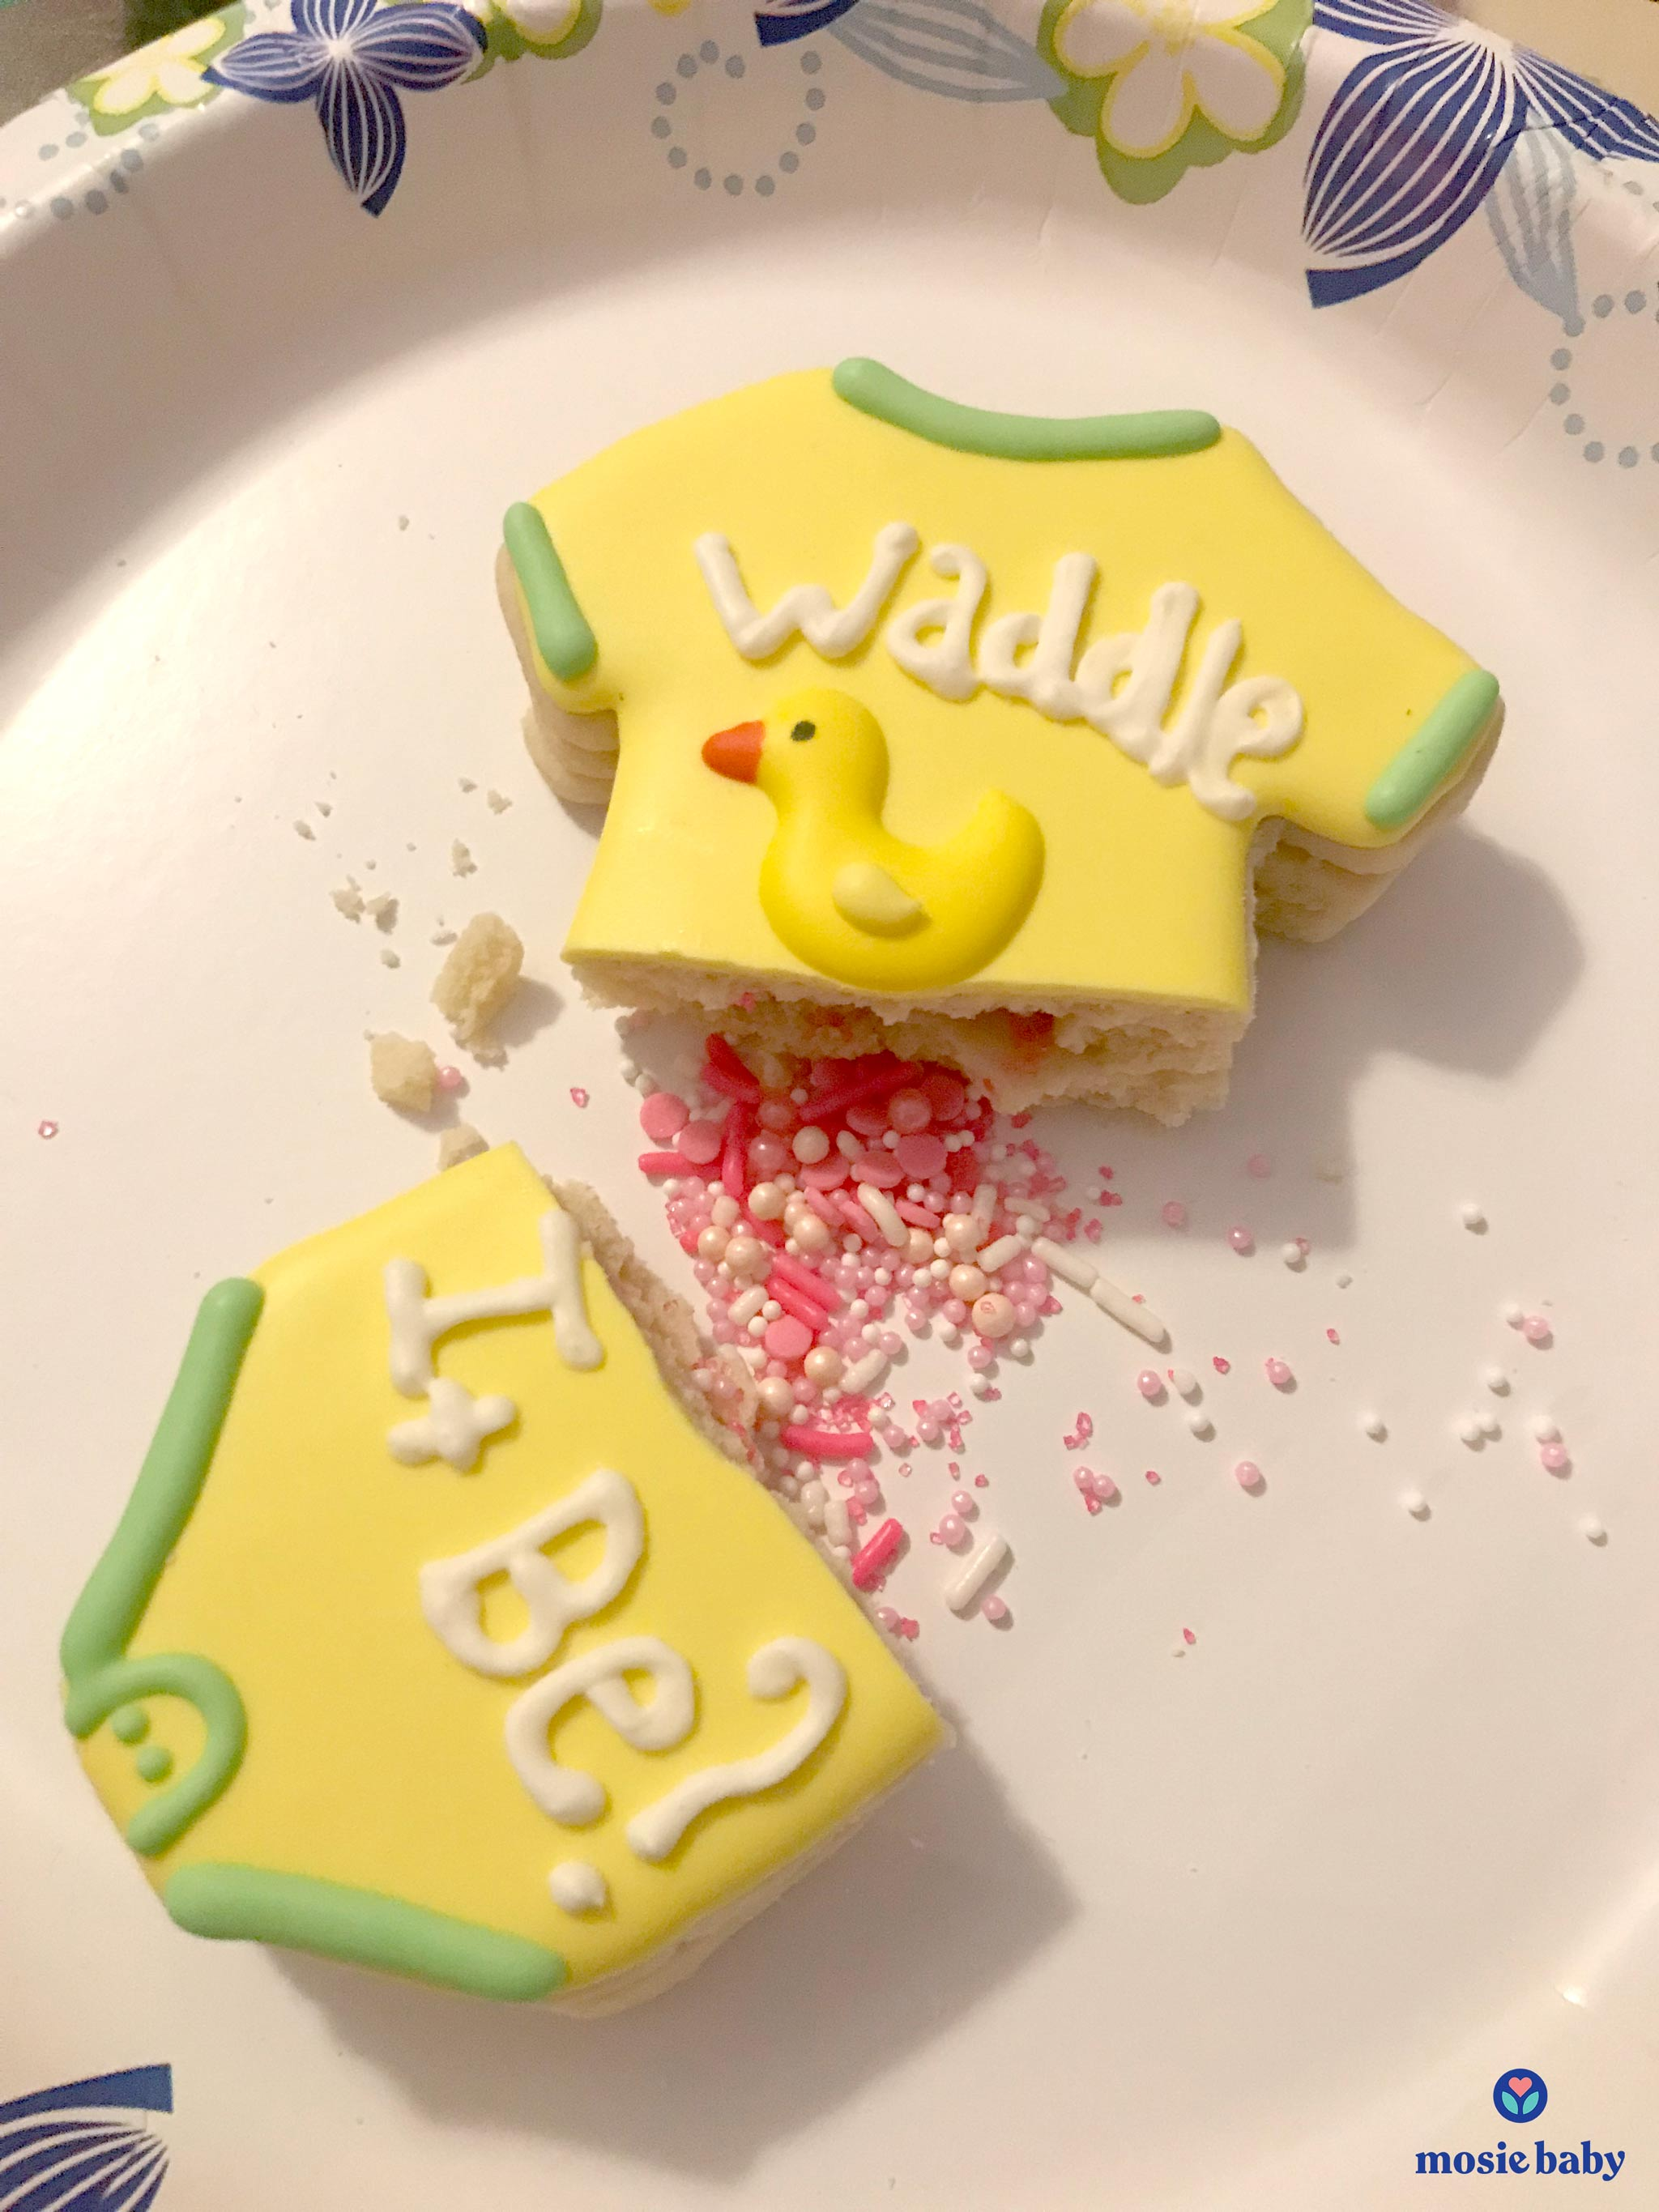 mosie baby gender reveal cake